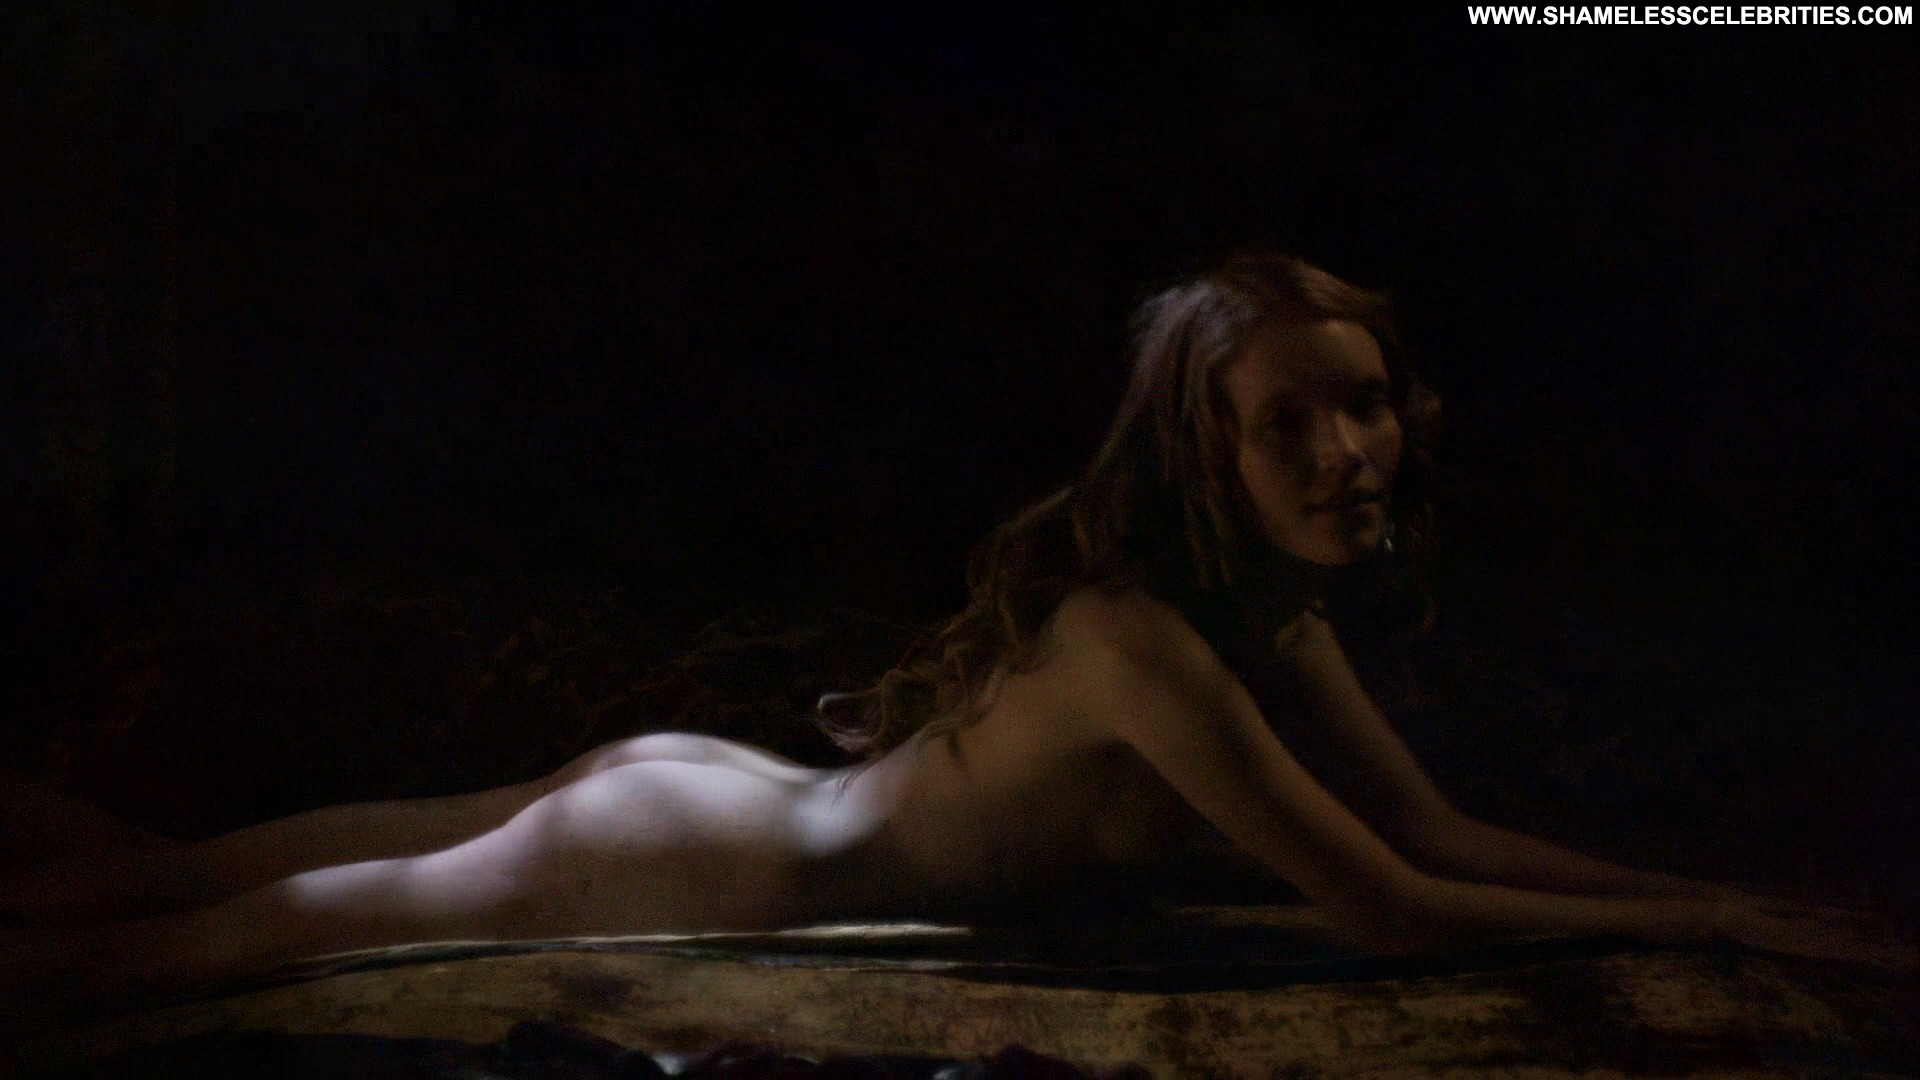 Tamzin merchant naked